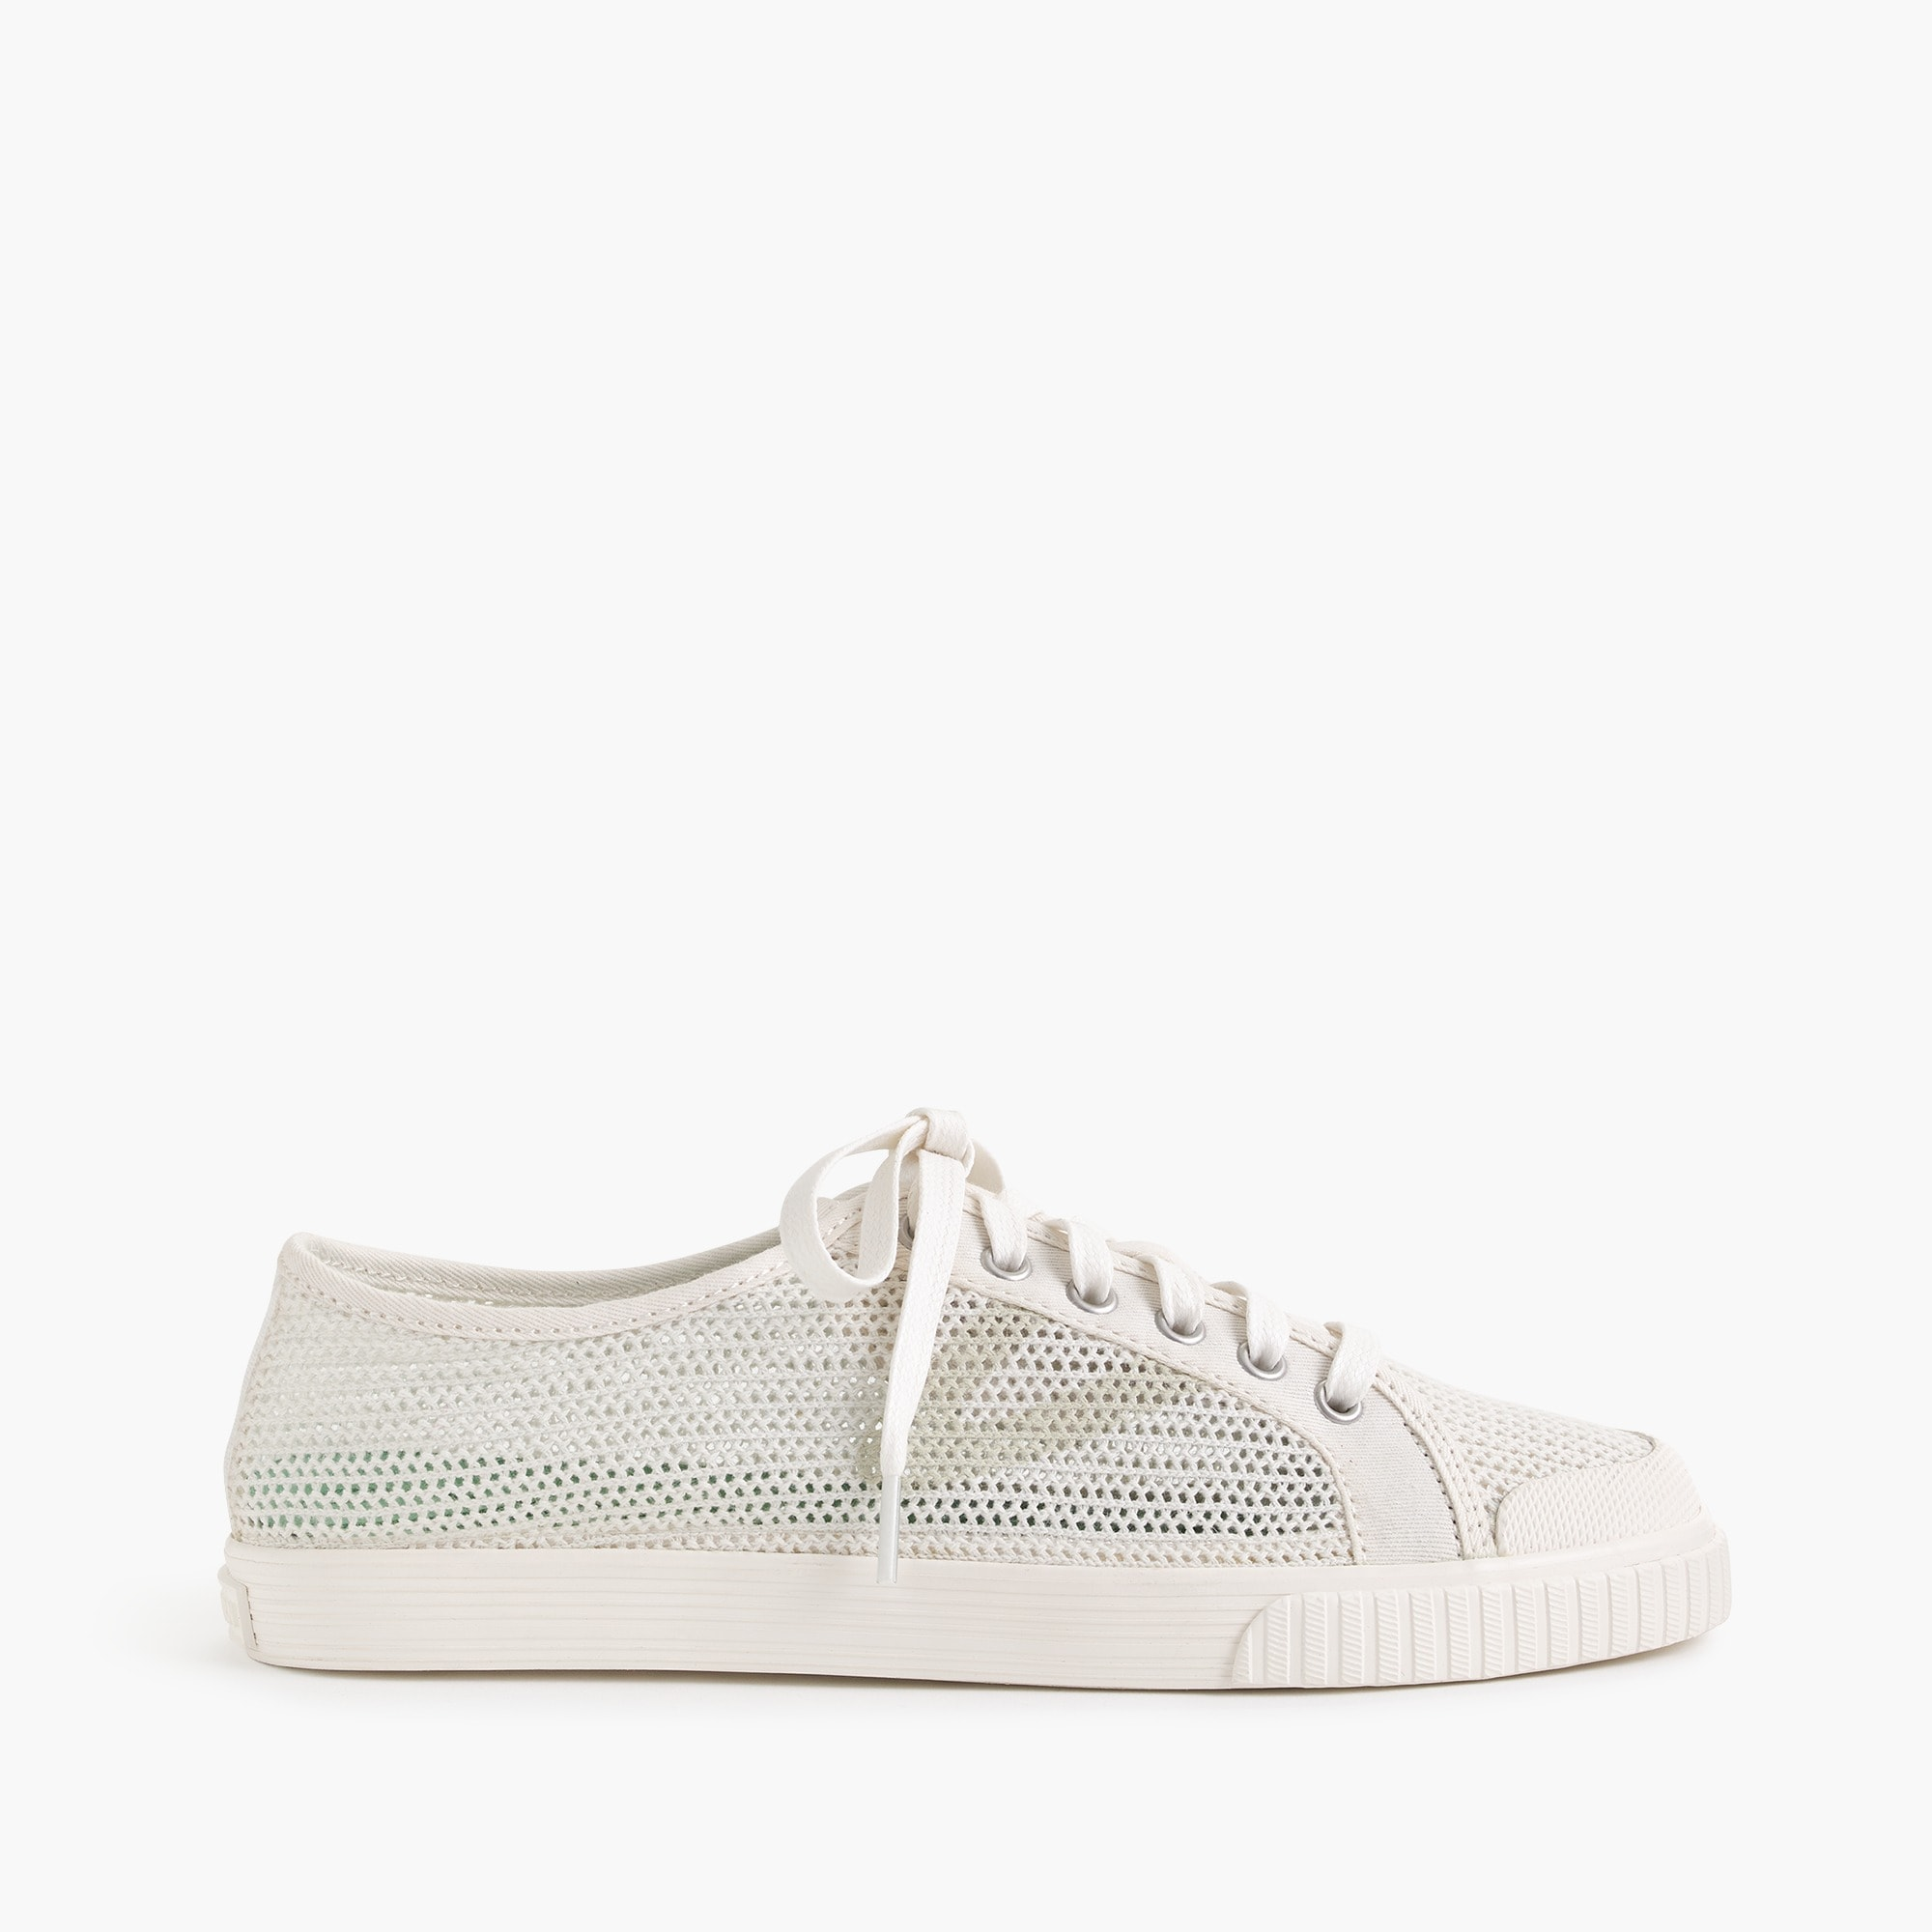 Image 2 for Women's Tretorn® Tournament Net for J.Crew sneakers